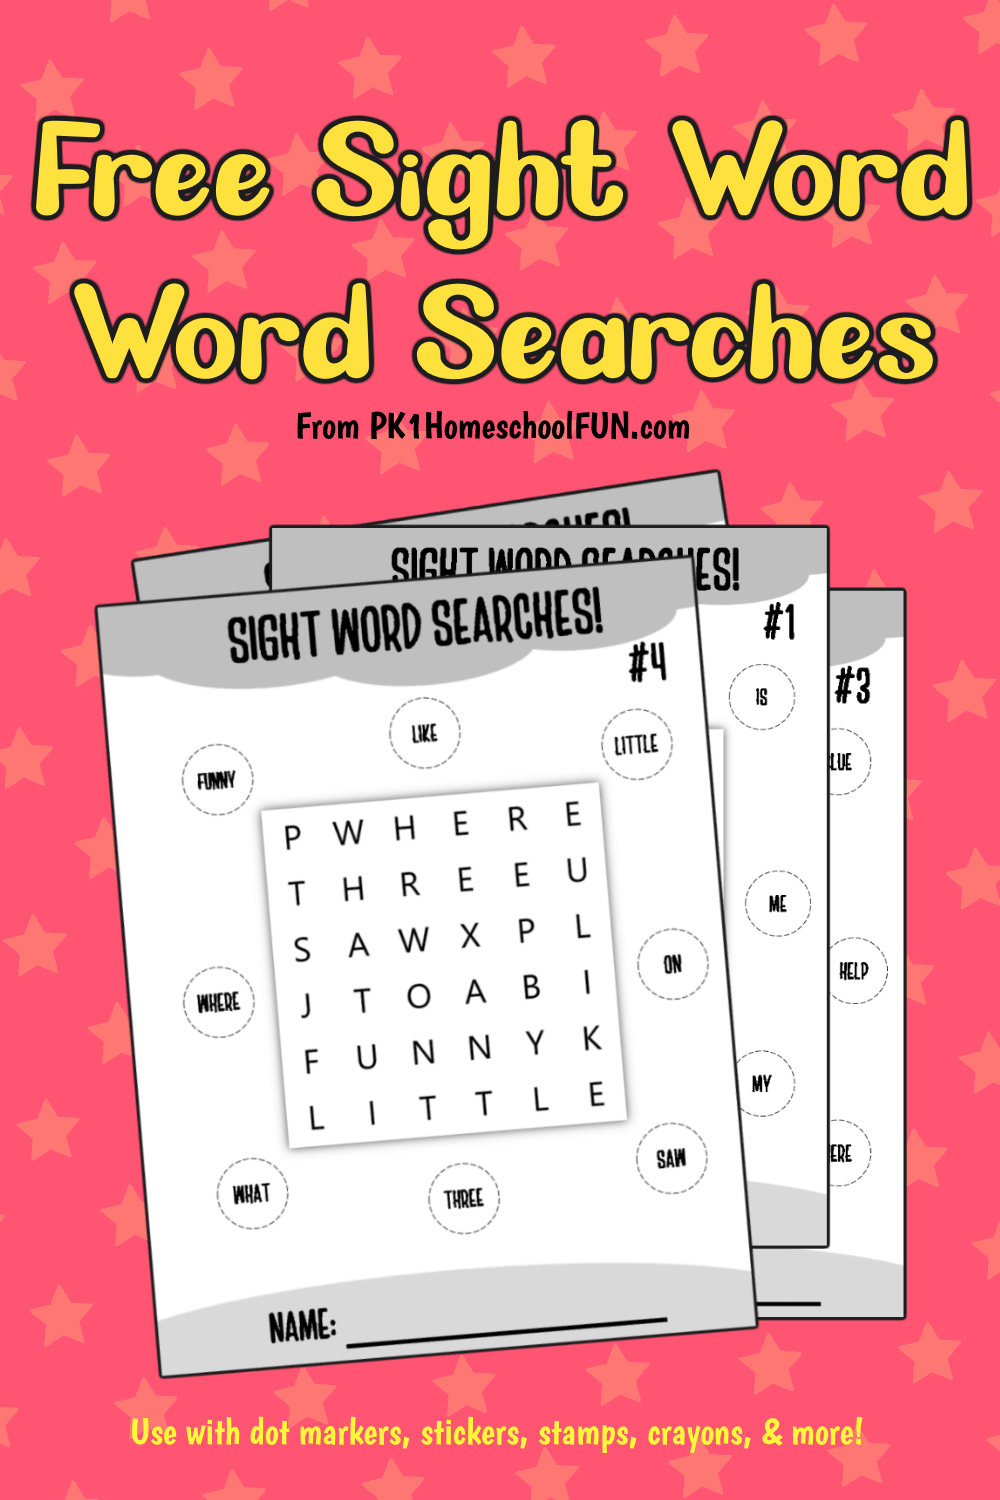 word searches for kids to practice sight words